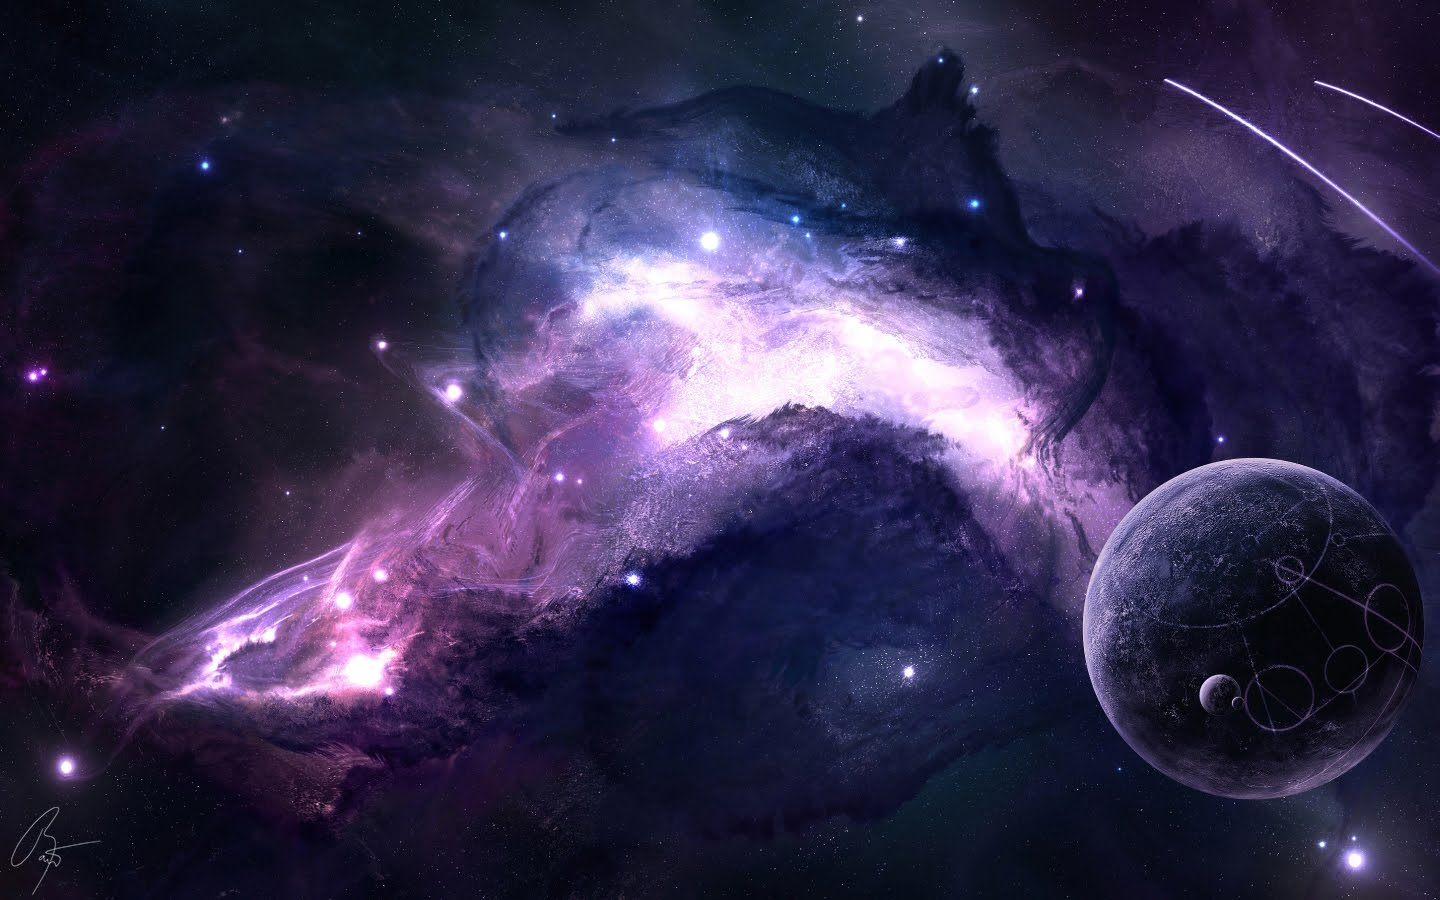 Wallpaper Bluos Space Wallpaper HD Wallpapers Download Free Images Wallpaper [1000image.com]